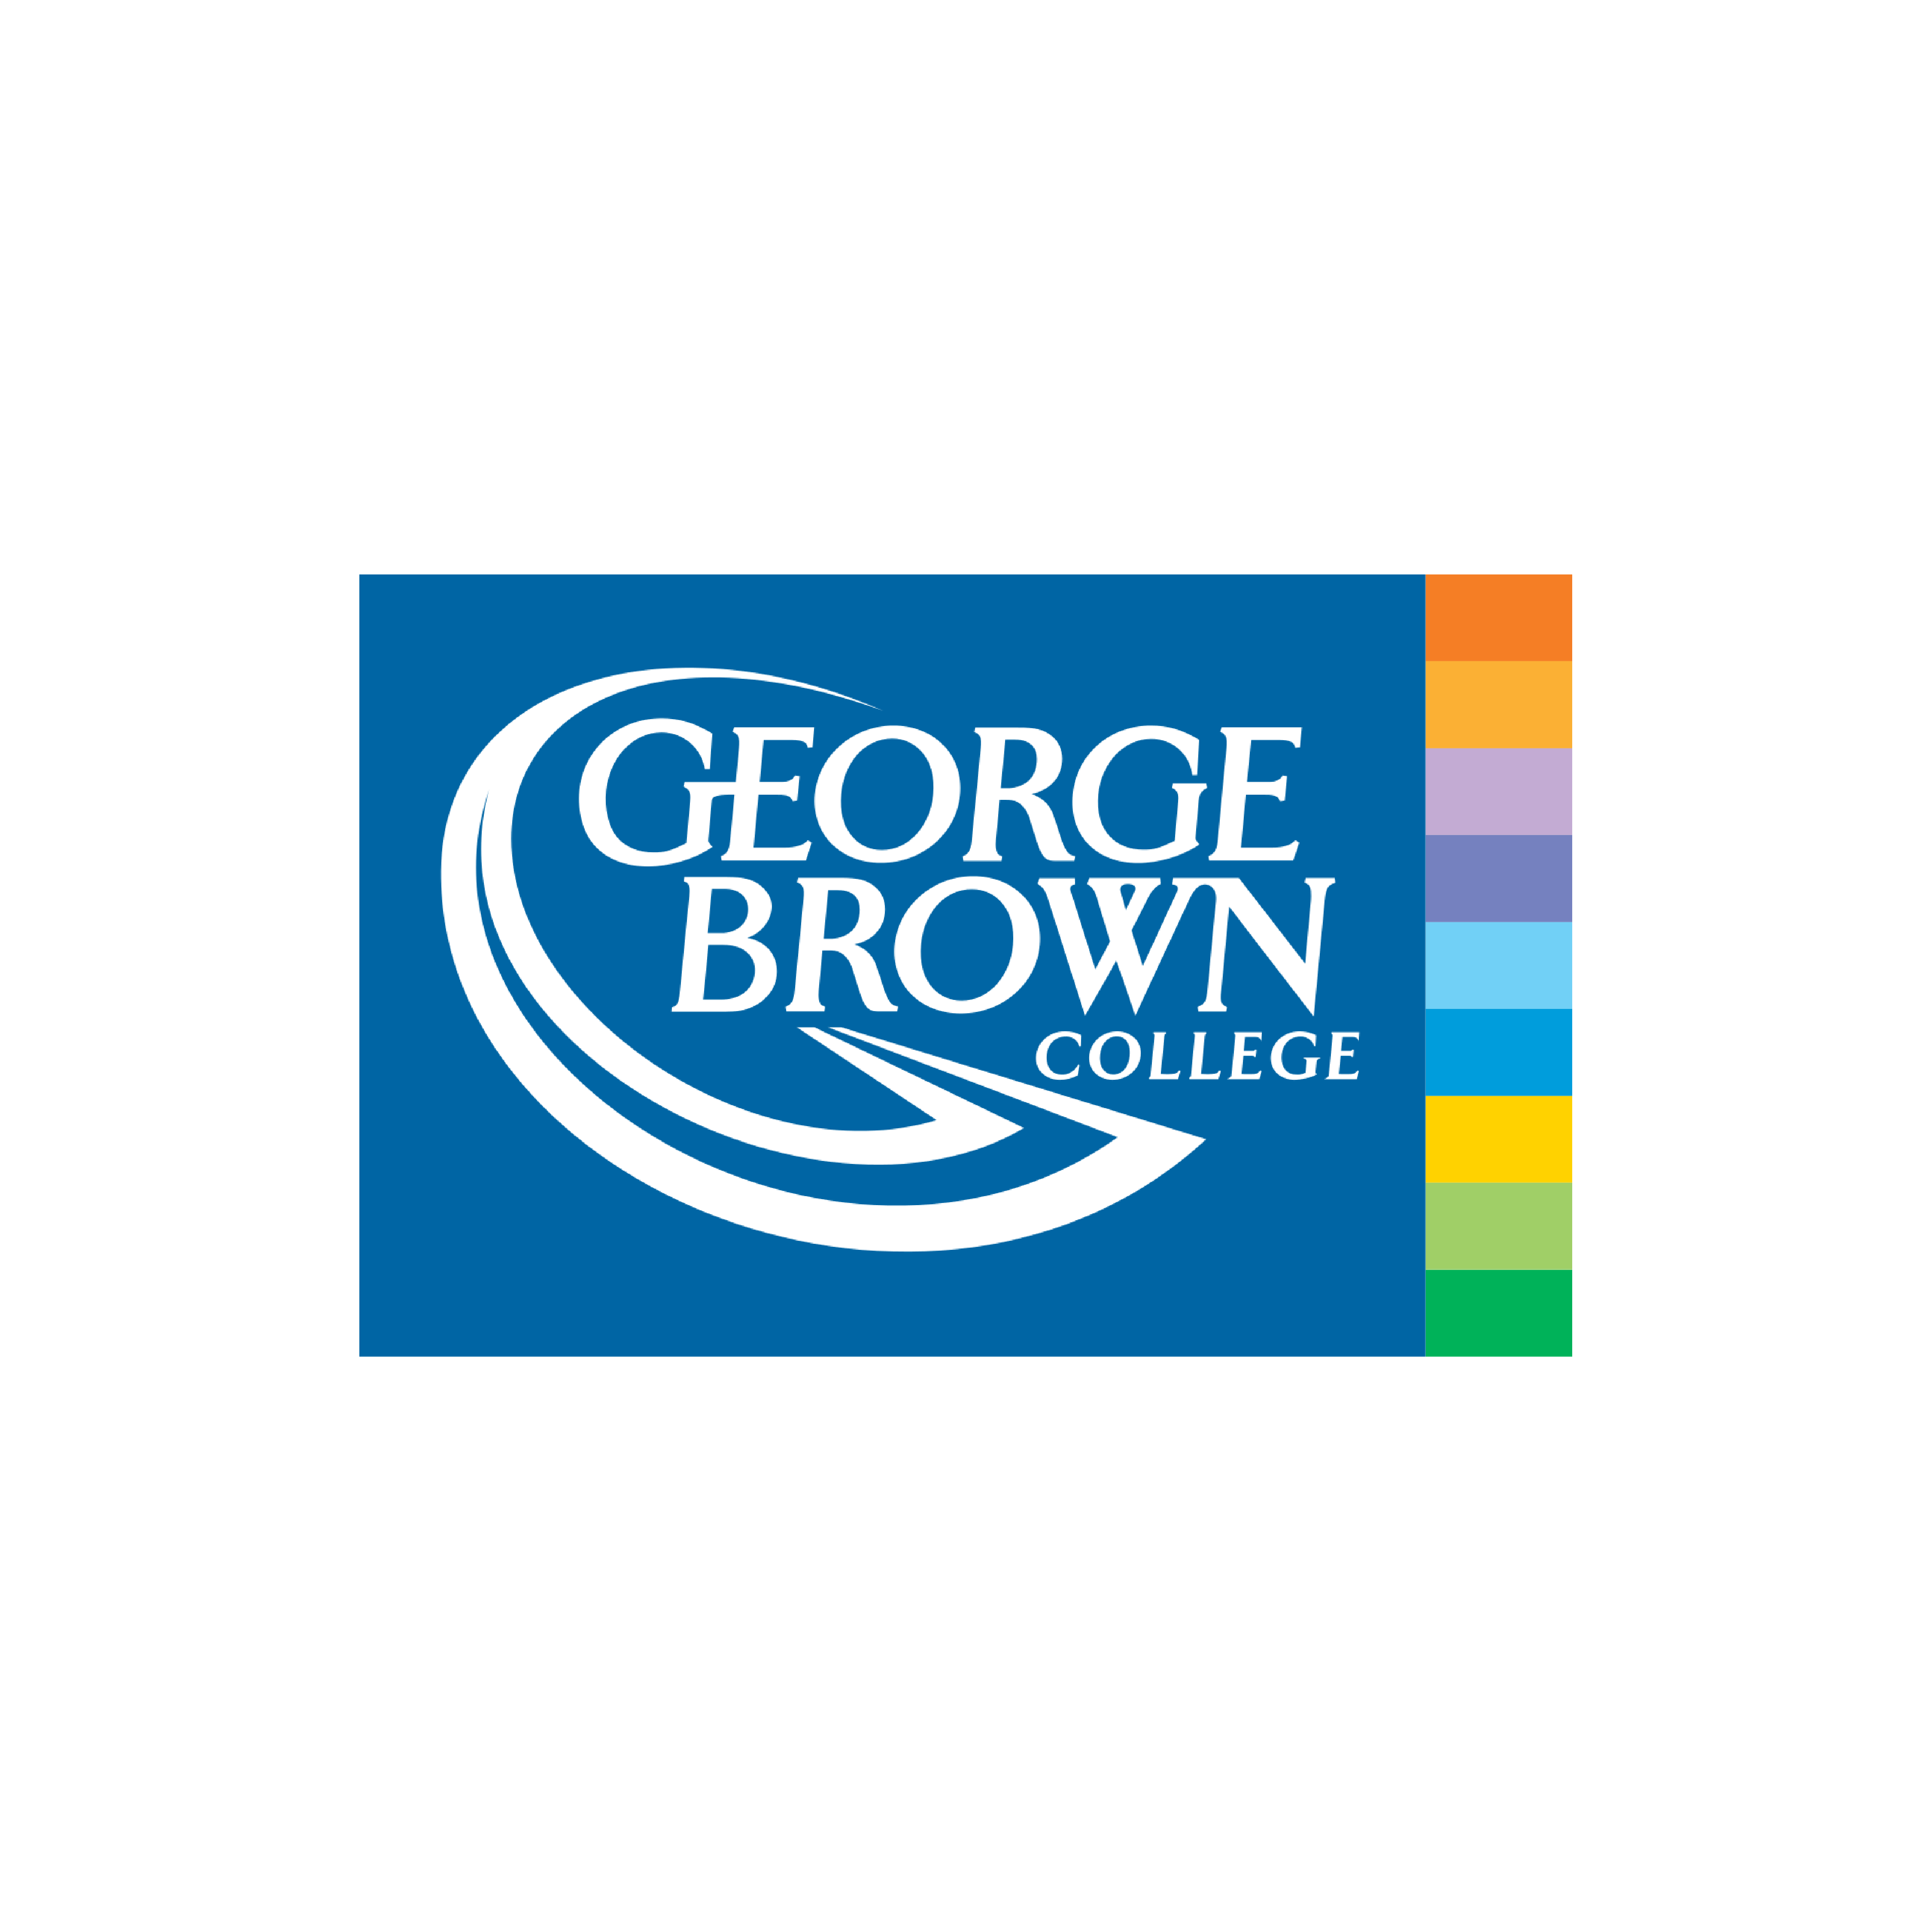 Smarties Partners, Yes Study, Aug 2020_George Brown College